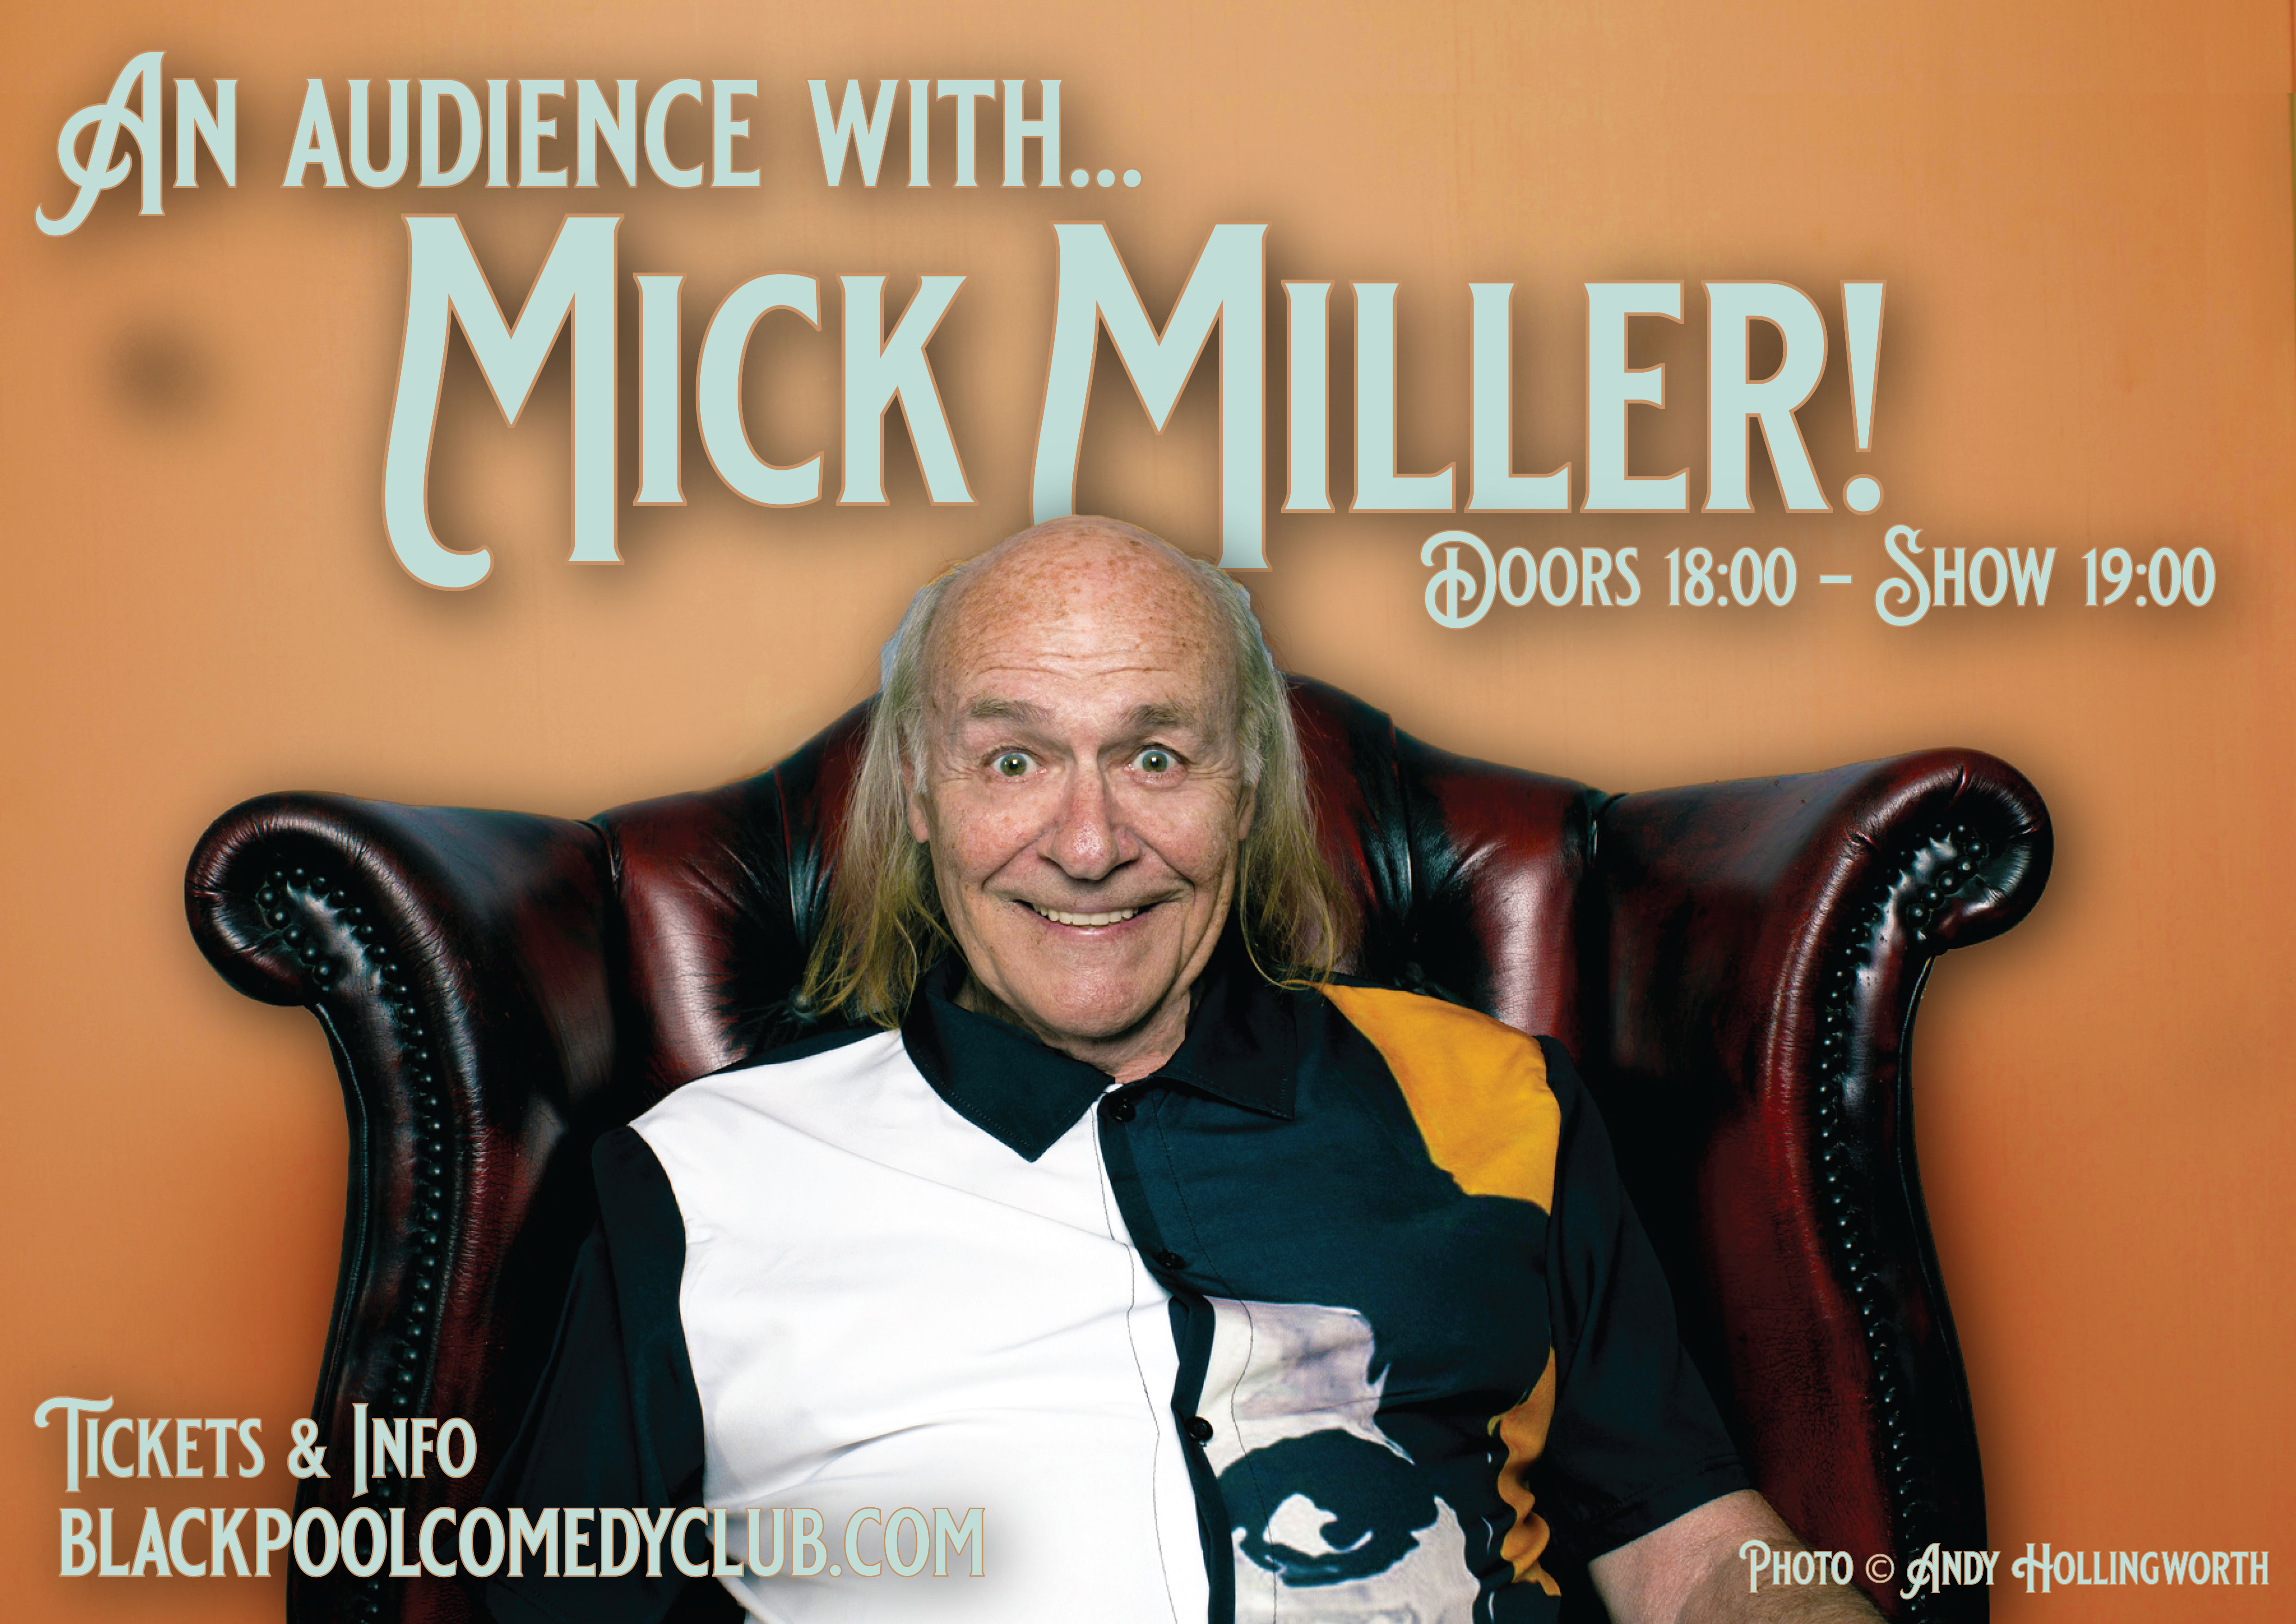 An audience with Mick Miller!